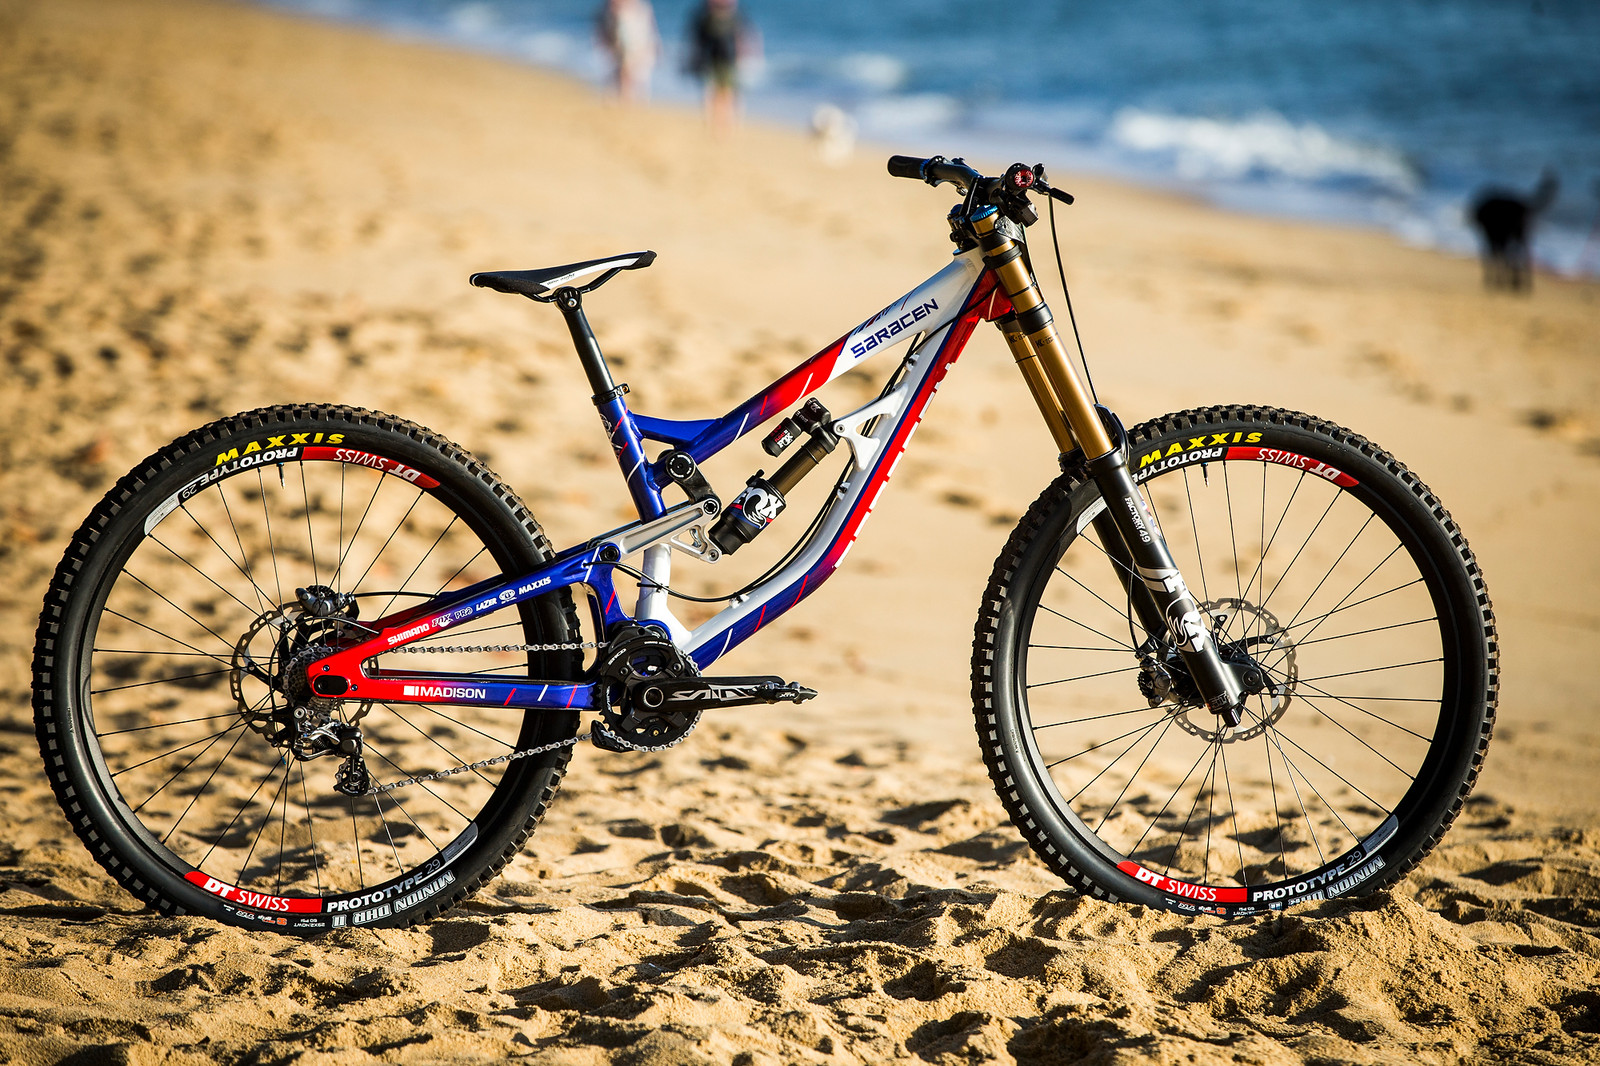 81afe3d711b RESULTS  2017 World Champs Downhill - Mountain Bikes News Stories ...